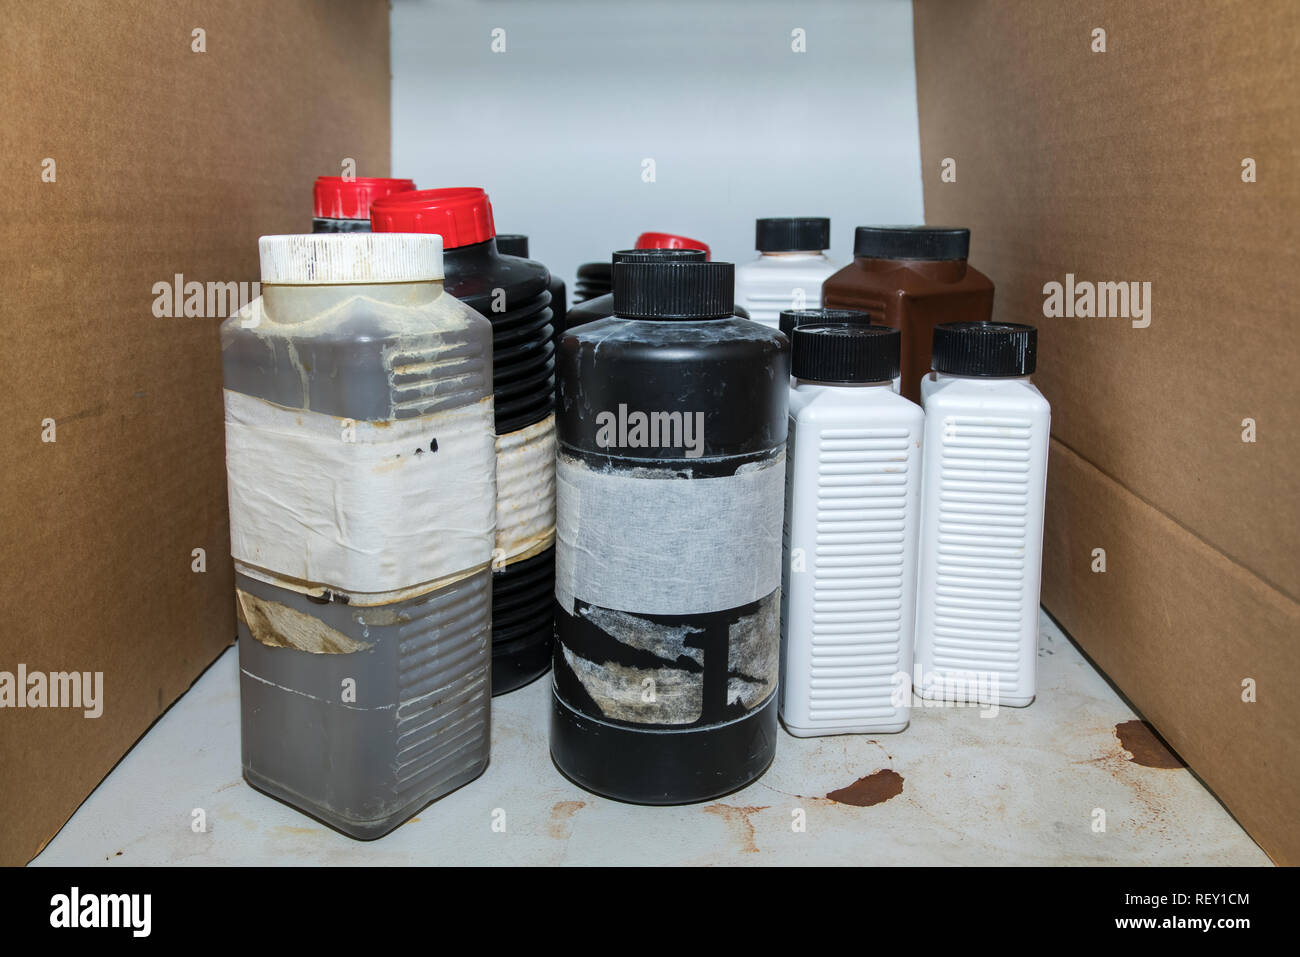 Flammable dangerous chemical in plastic bottle containers on a shelf in the lab - Stock Image